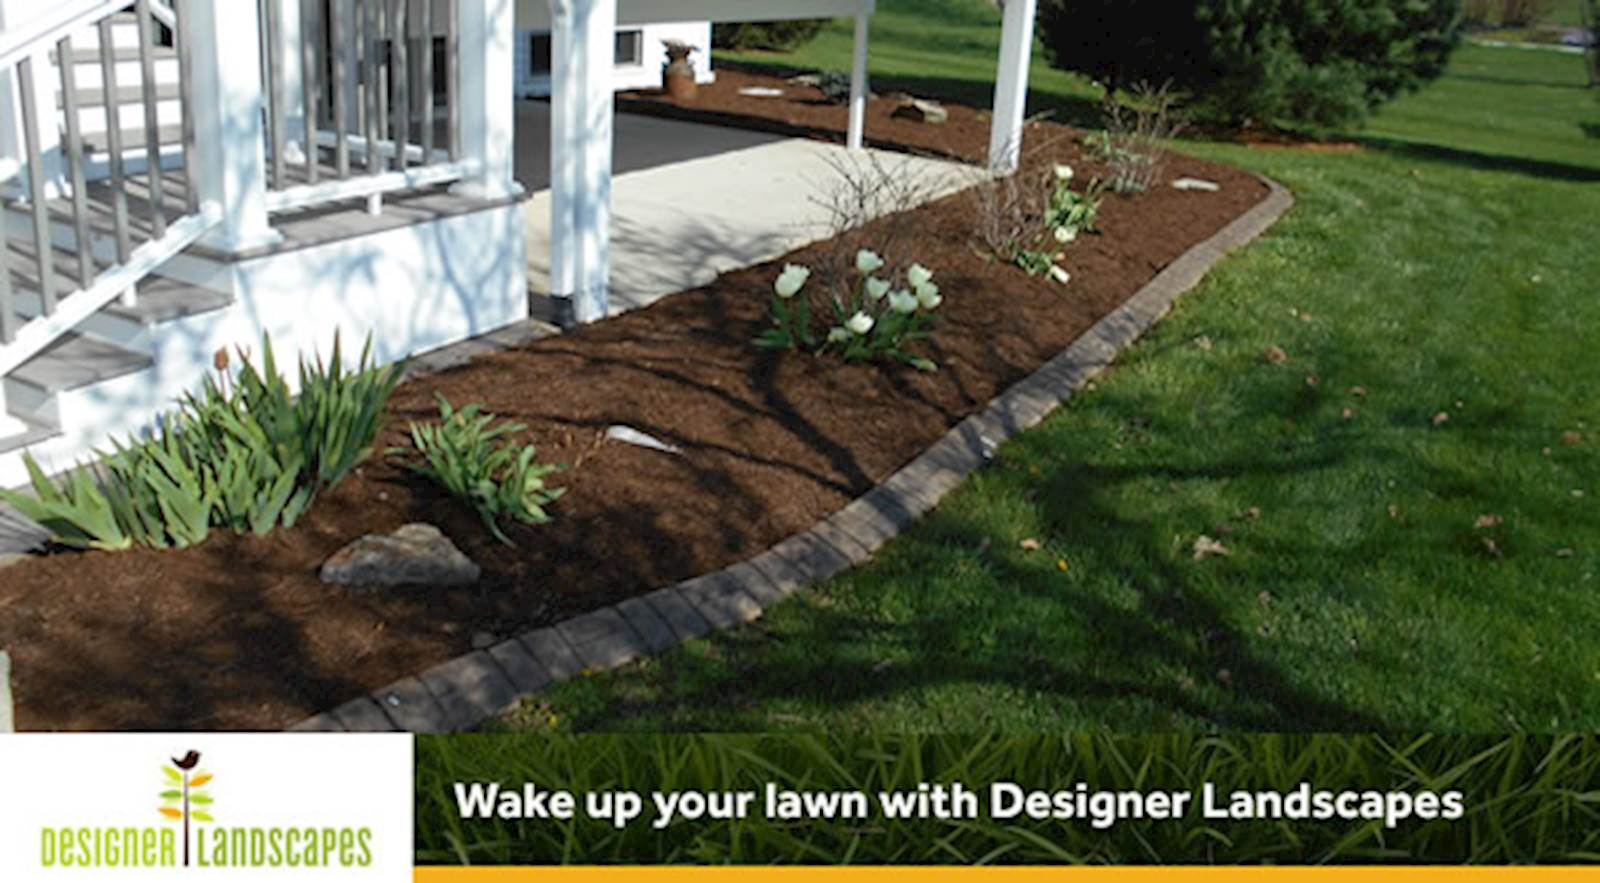 Call Designer Landscapes Today